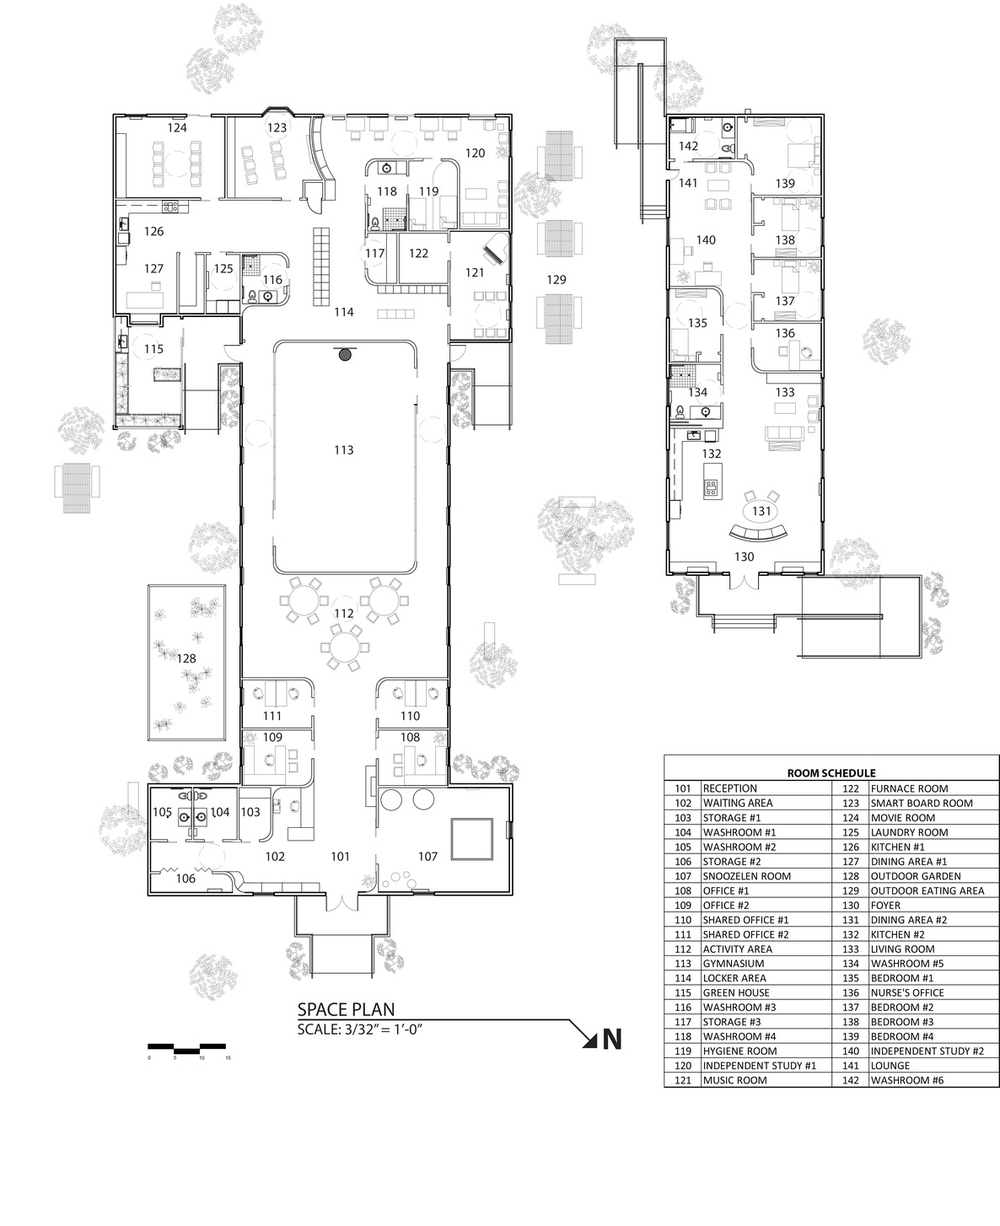 floorplan legend.jpg